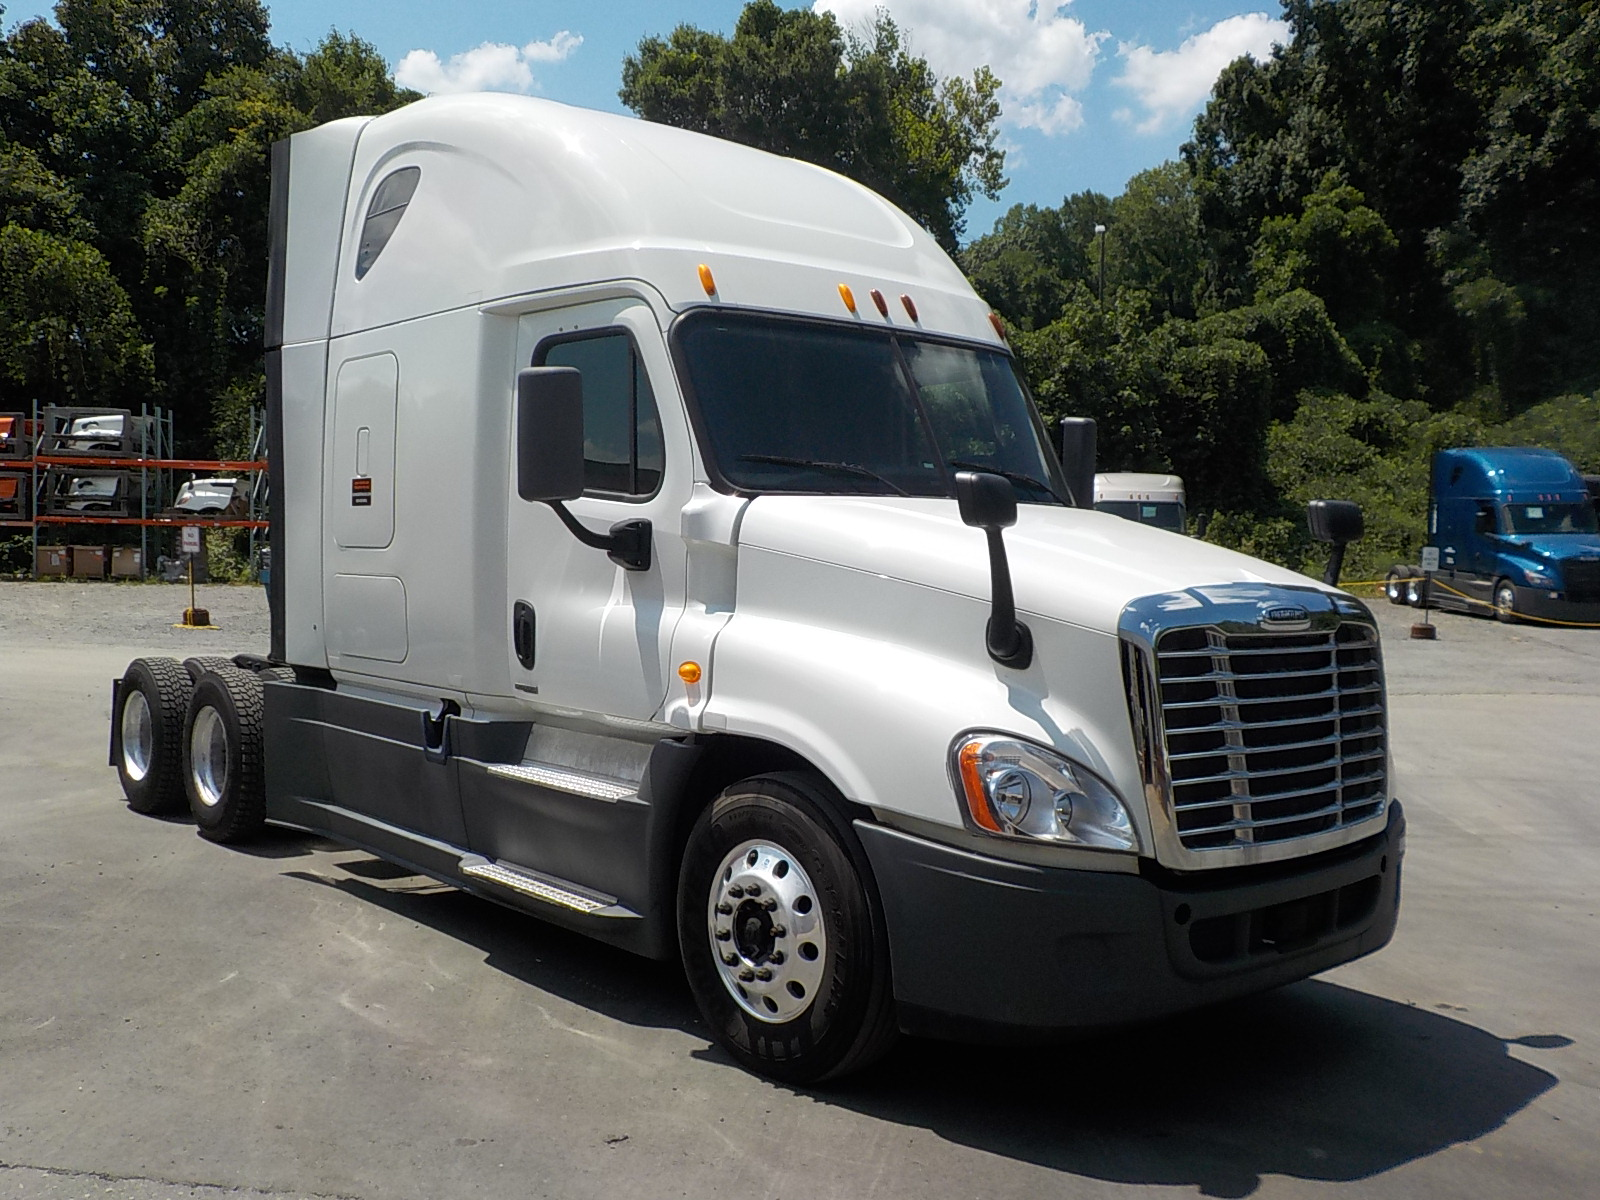 USED 2014 FREIGHTLINER CASCADIA SLEEPER TRUCK #129194